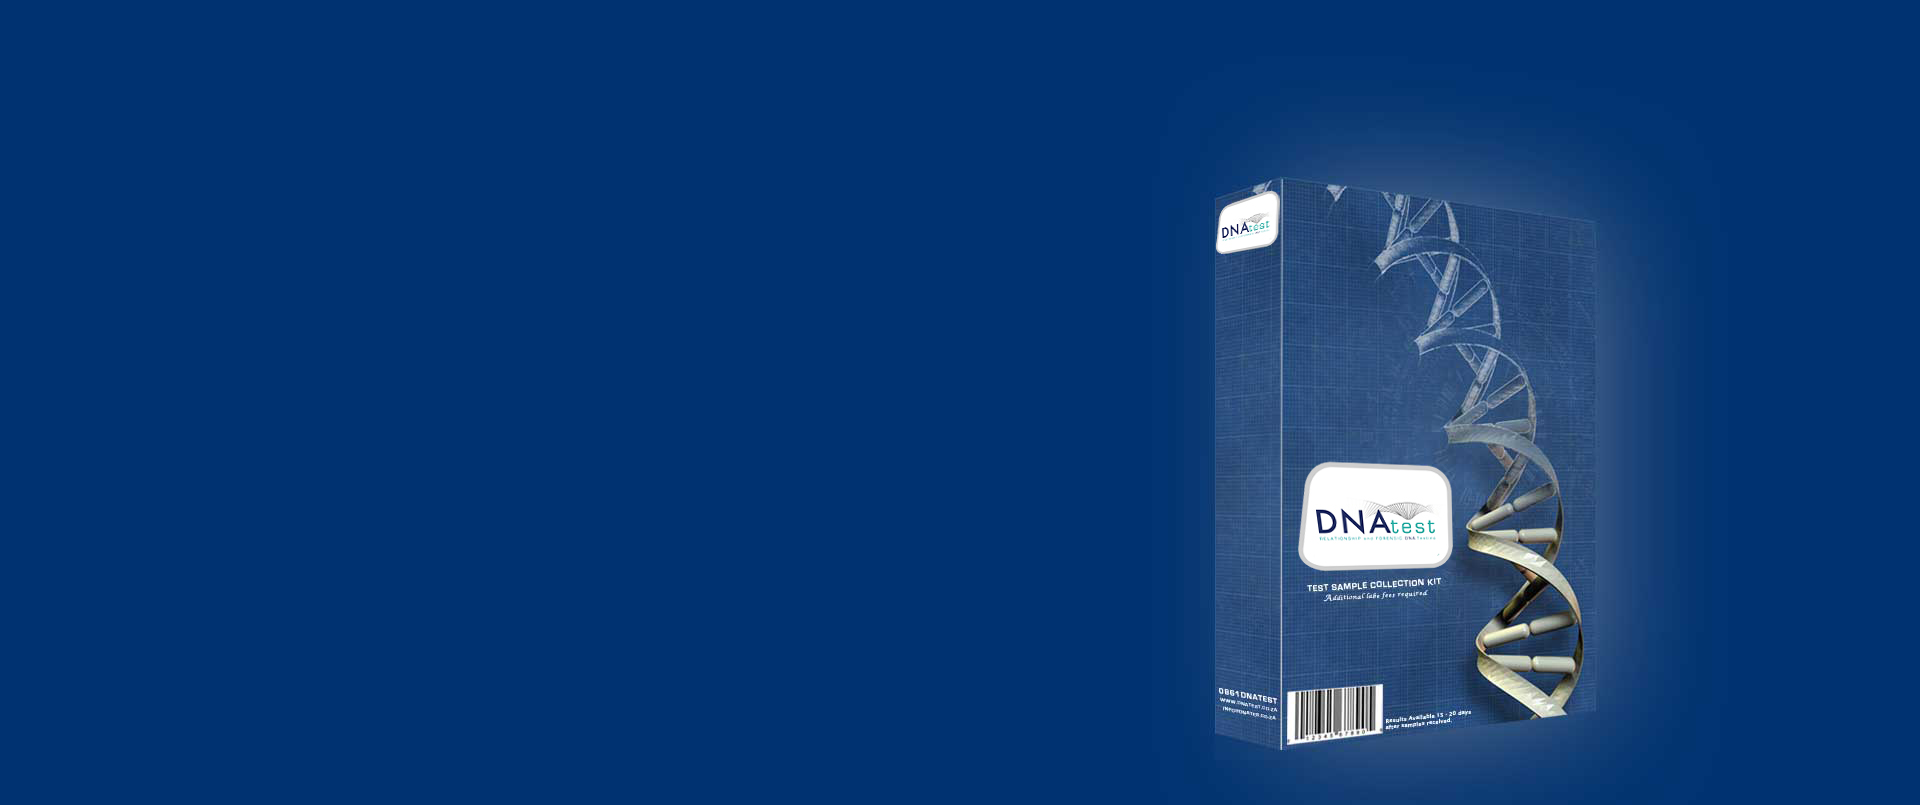 The first company in Africa to market the DNA Paternity Test Collection kit at pharmacies.